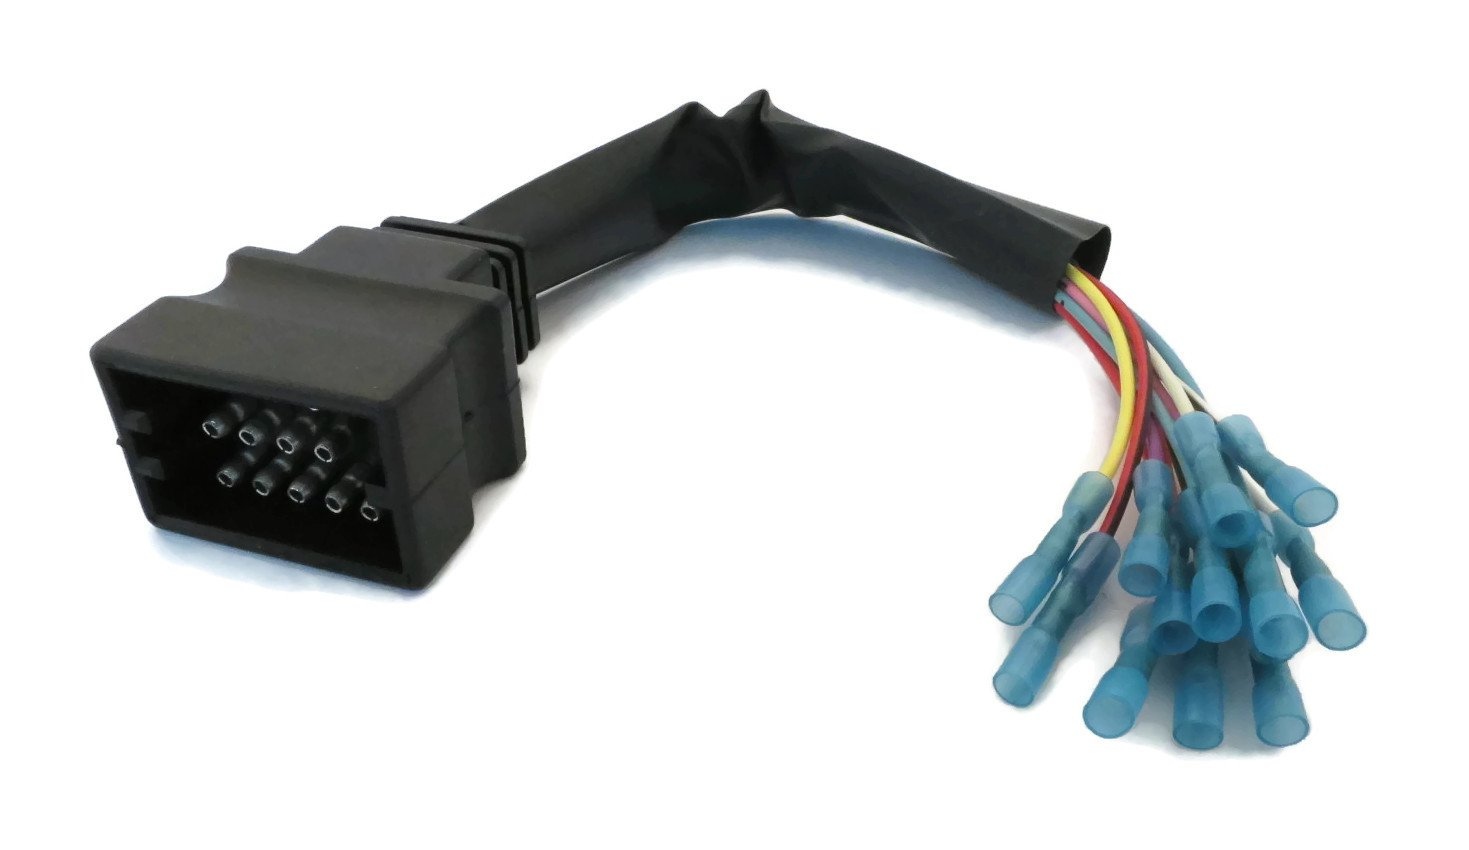 Amazon.com: Snow Plow Wiring Harness Repair Kit (Plow Side) MSC04754 for  Boss Snowplow Blade: Garden & Outdoor